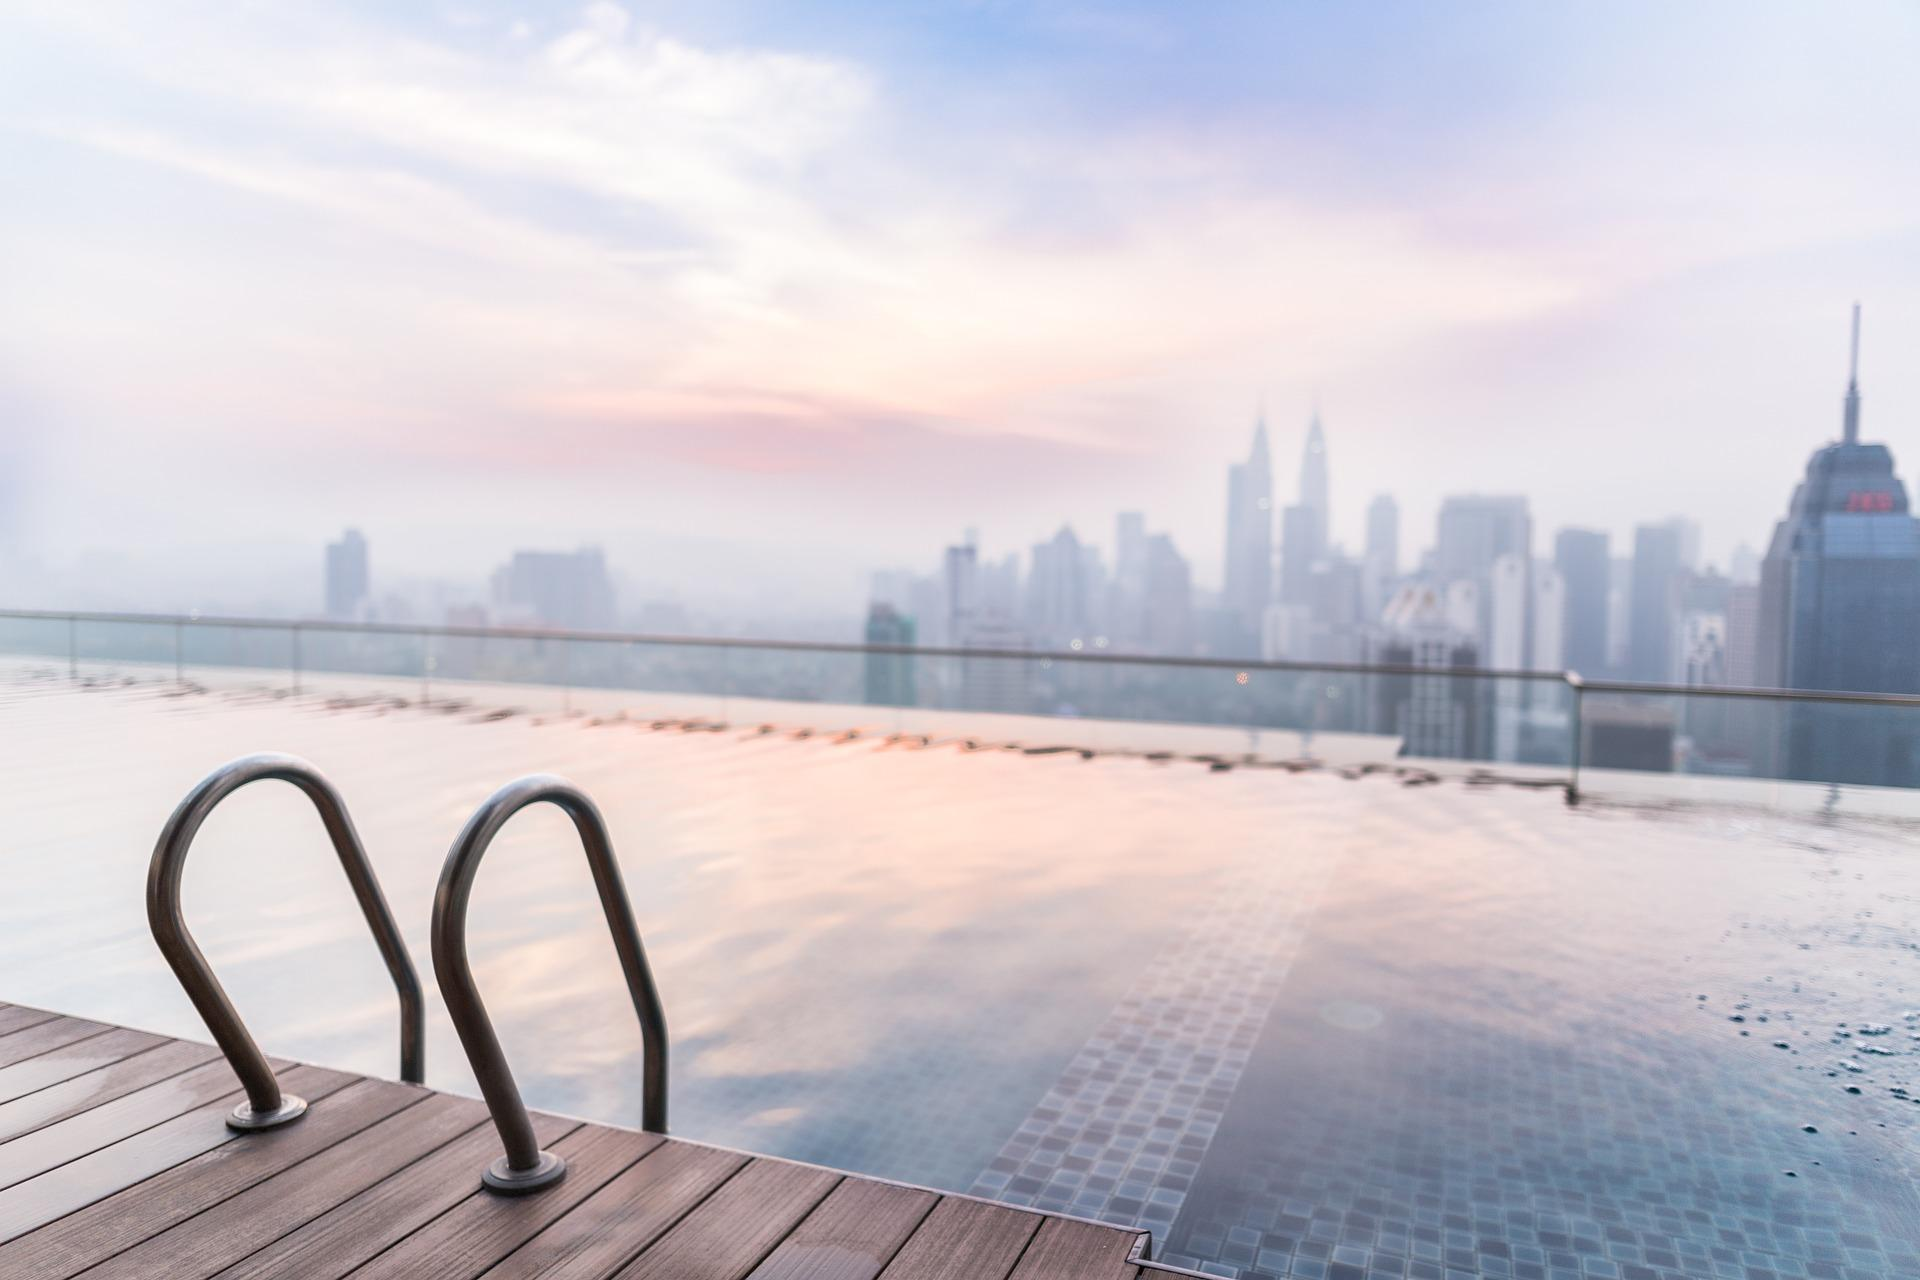 Staycation: Rediscover Your City